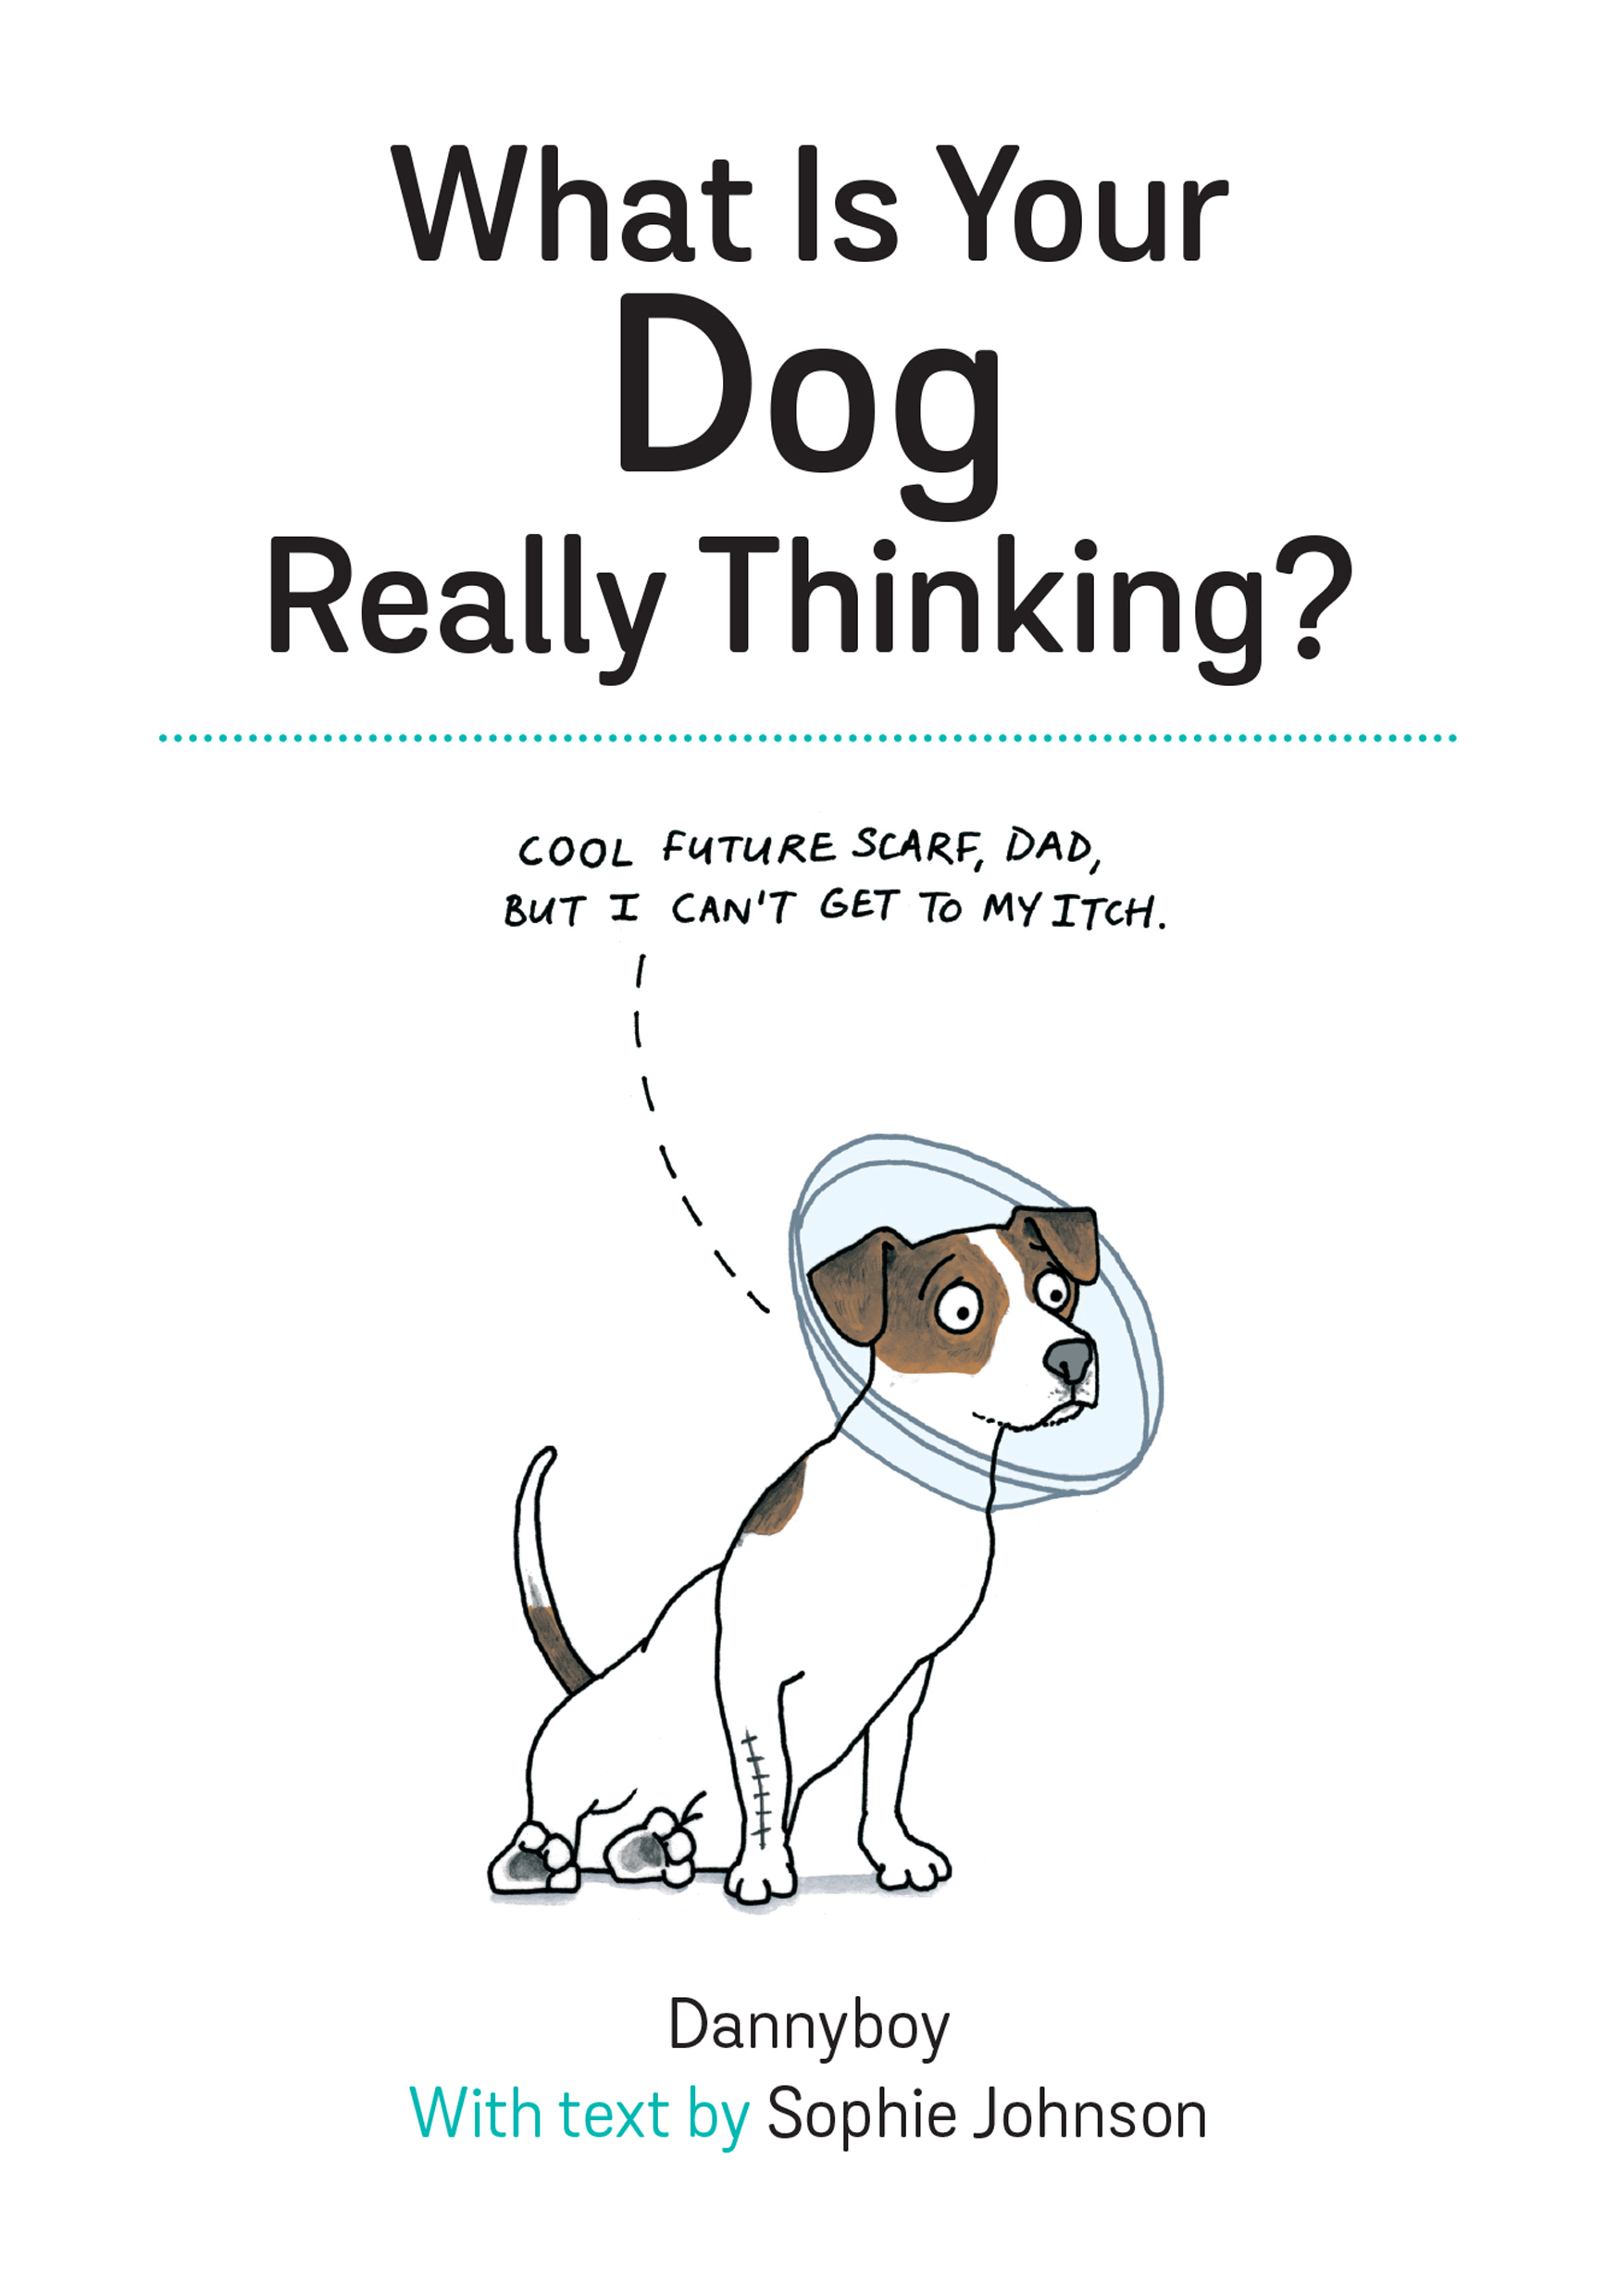 What is your Dog Really Thinking? (published by Summersdale 2017)